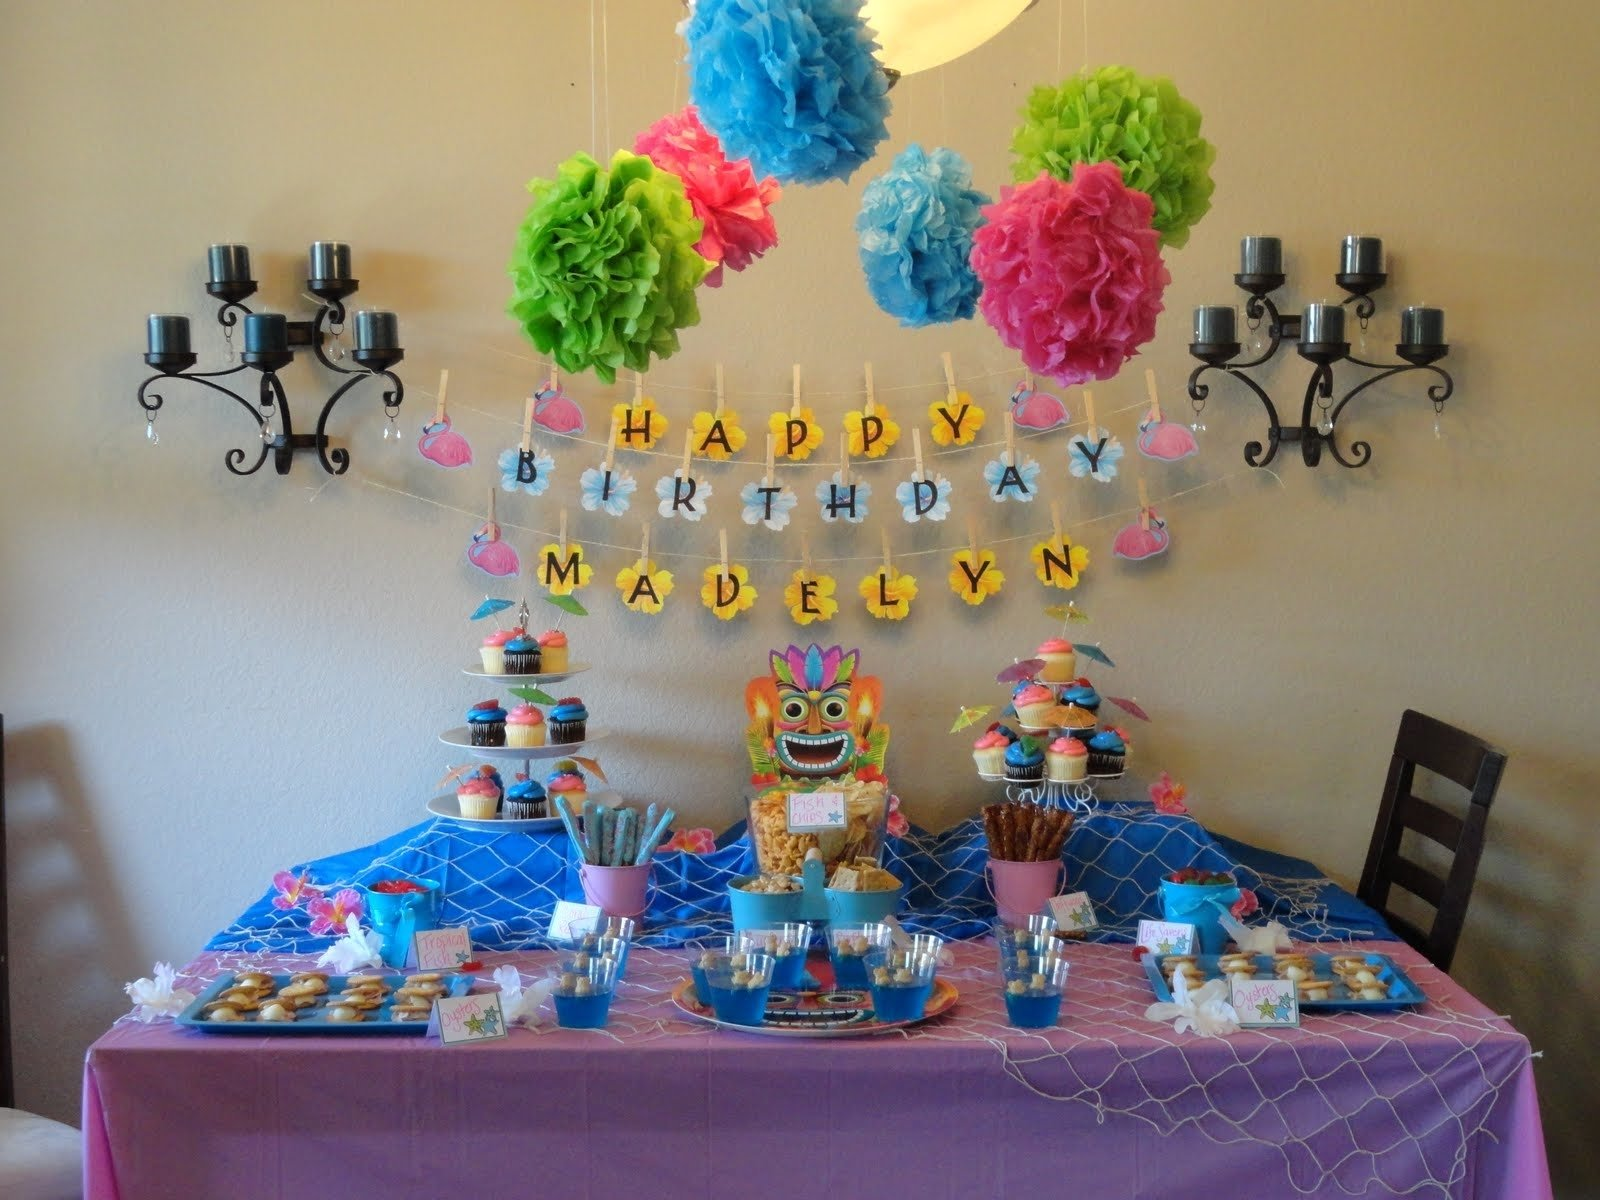 10 Most Recommended 2 Year Old Bday Party Ideas themes birthday 2 and 4 year old birthday party ideas as well as 3 2020